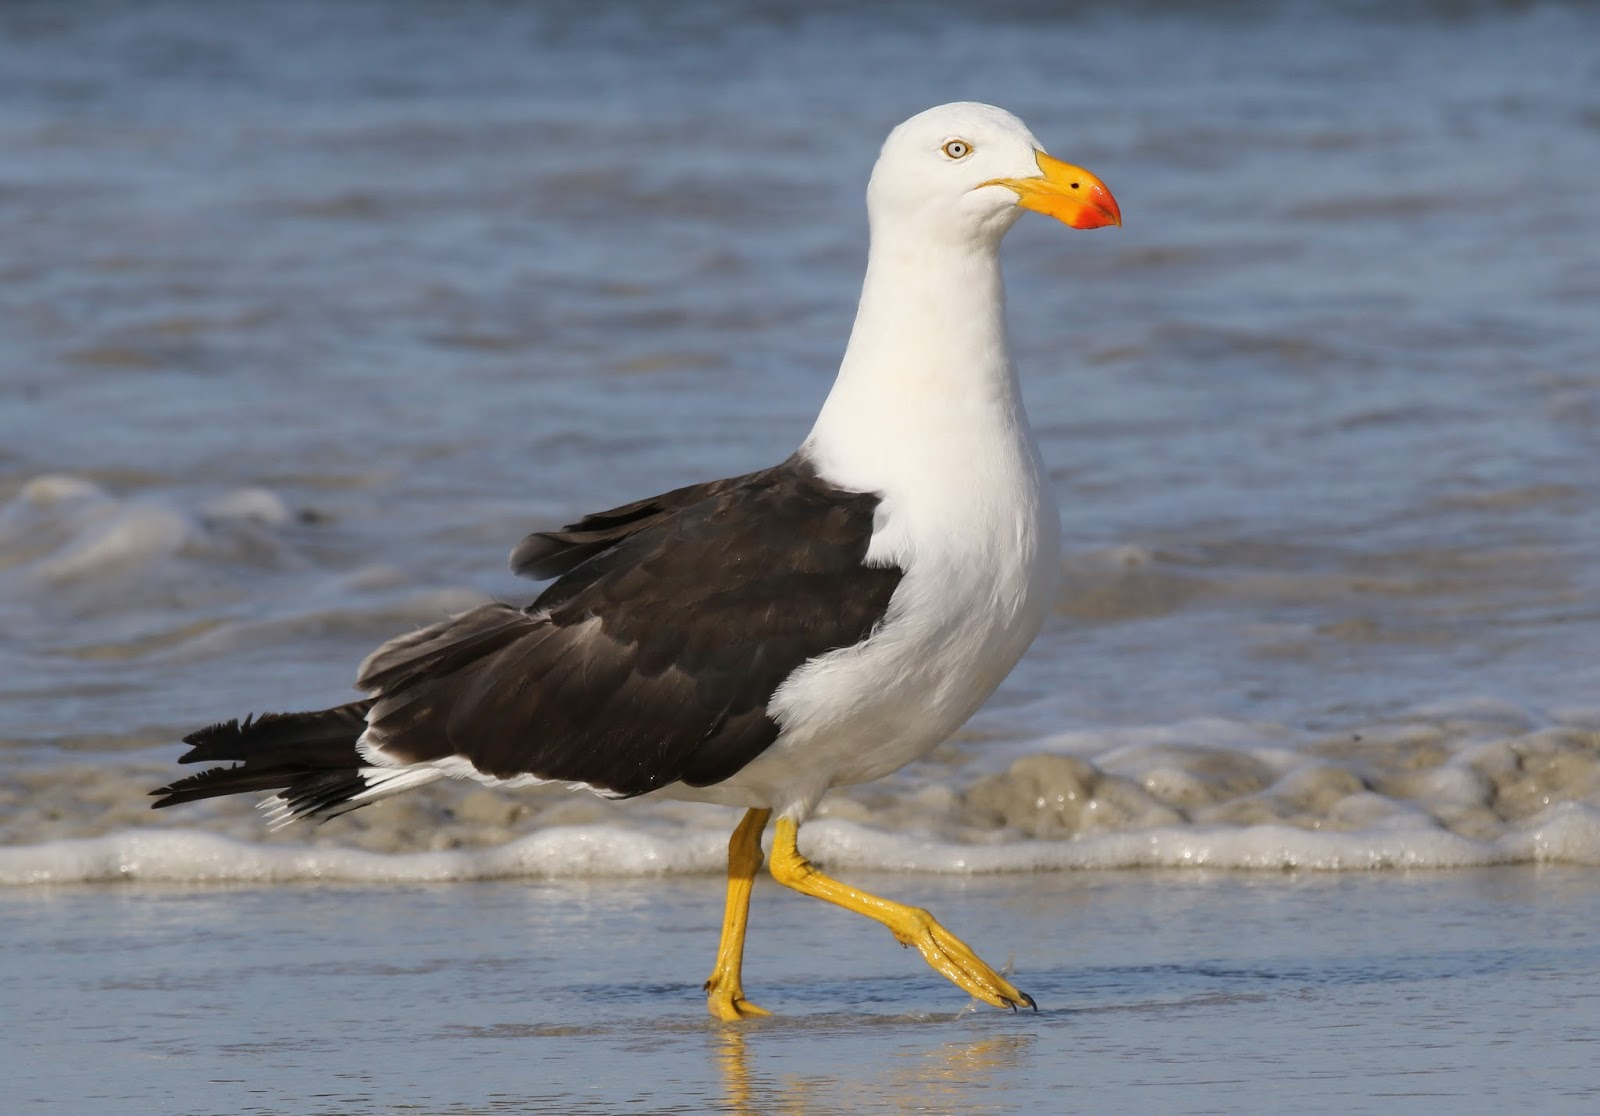 Chris Gibbins - gulls & birds: Pacific Gull